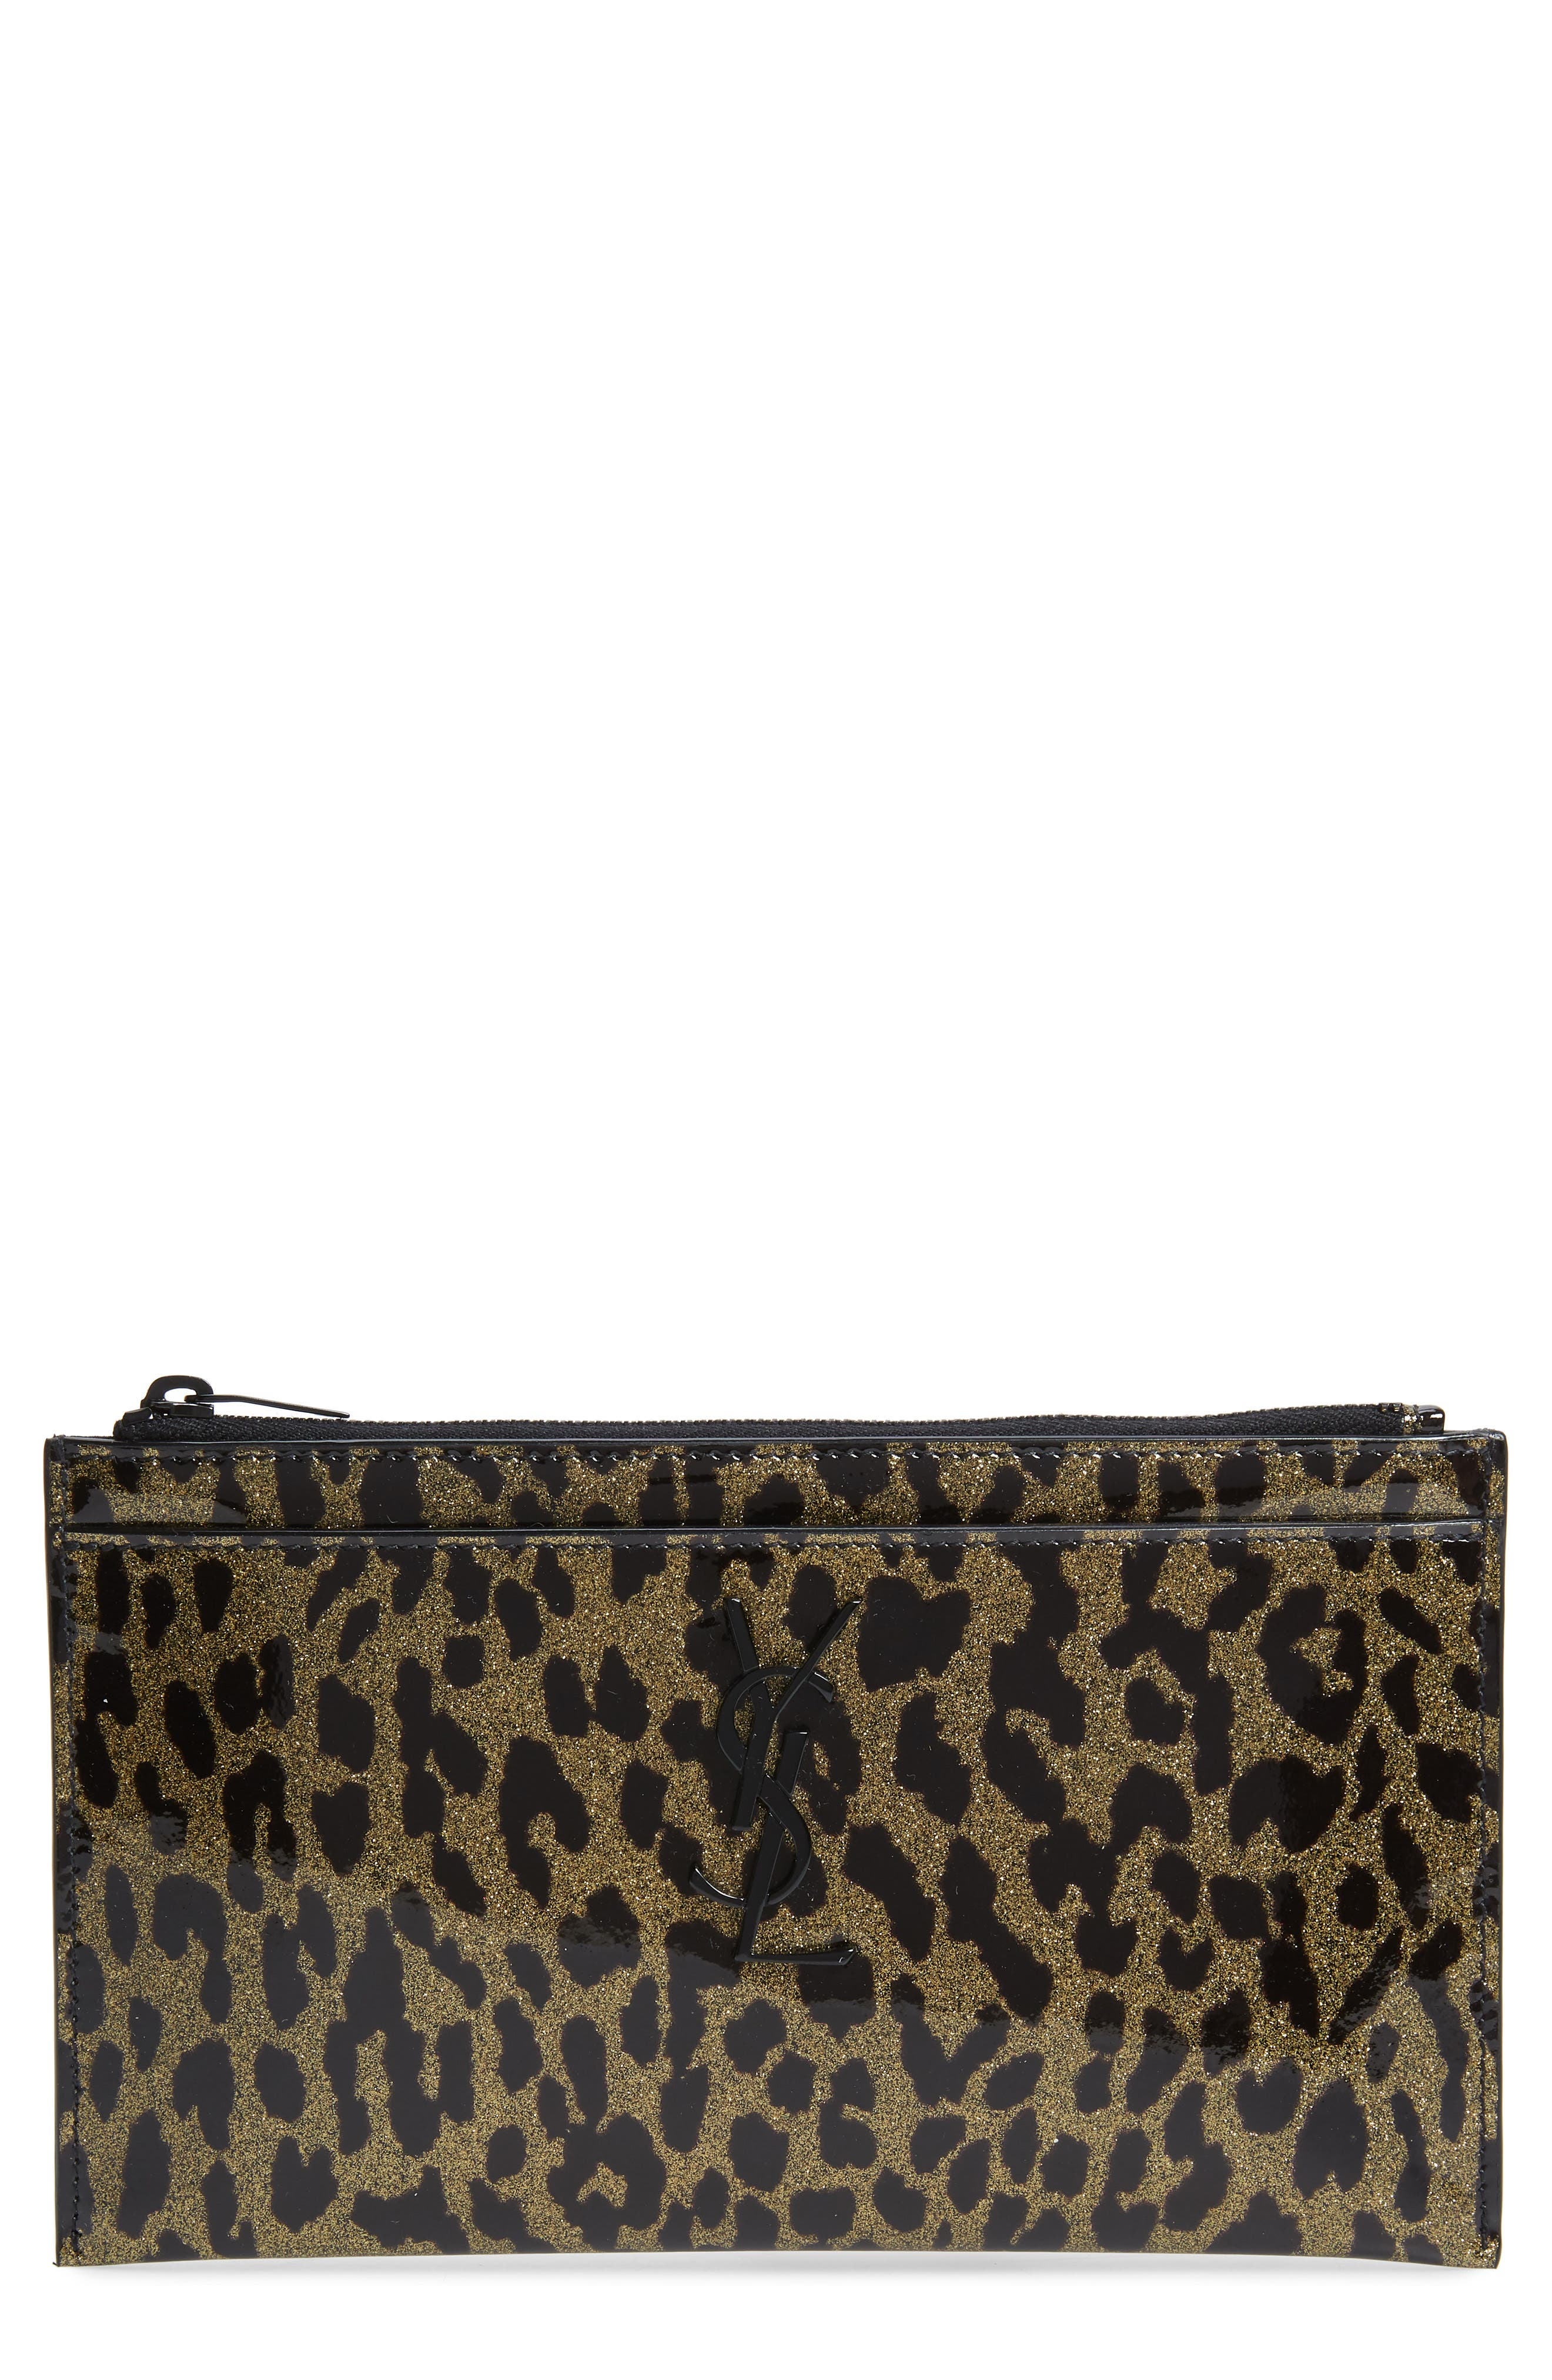 Saint Laurent Clutch Metallic Leopard Print Leather Pouch